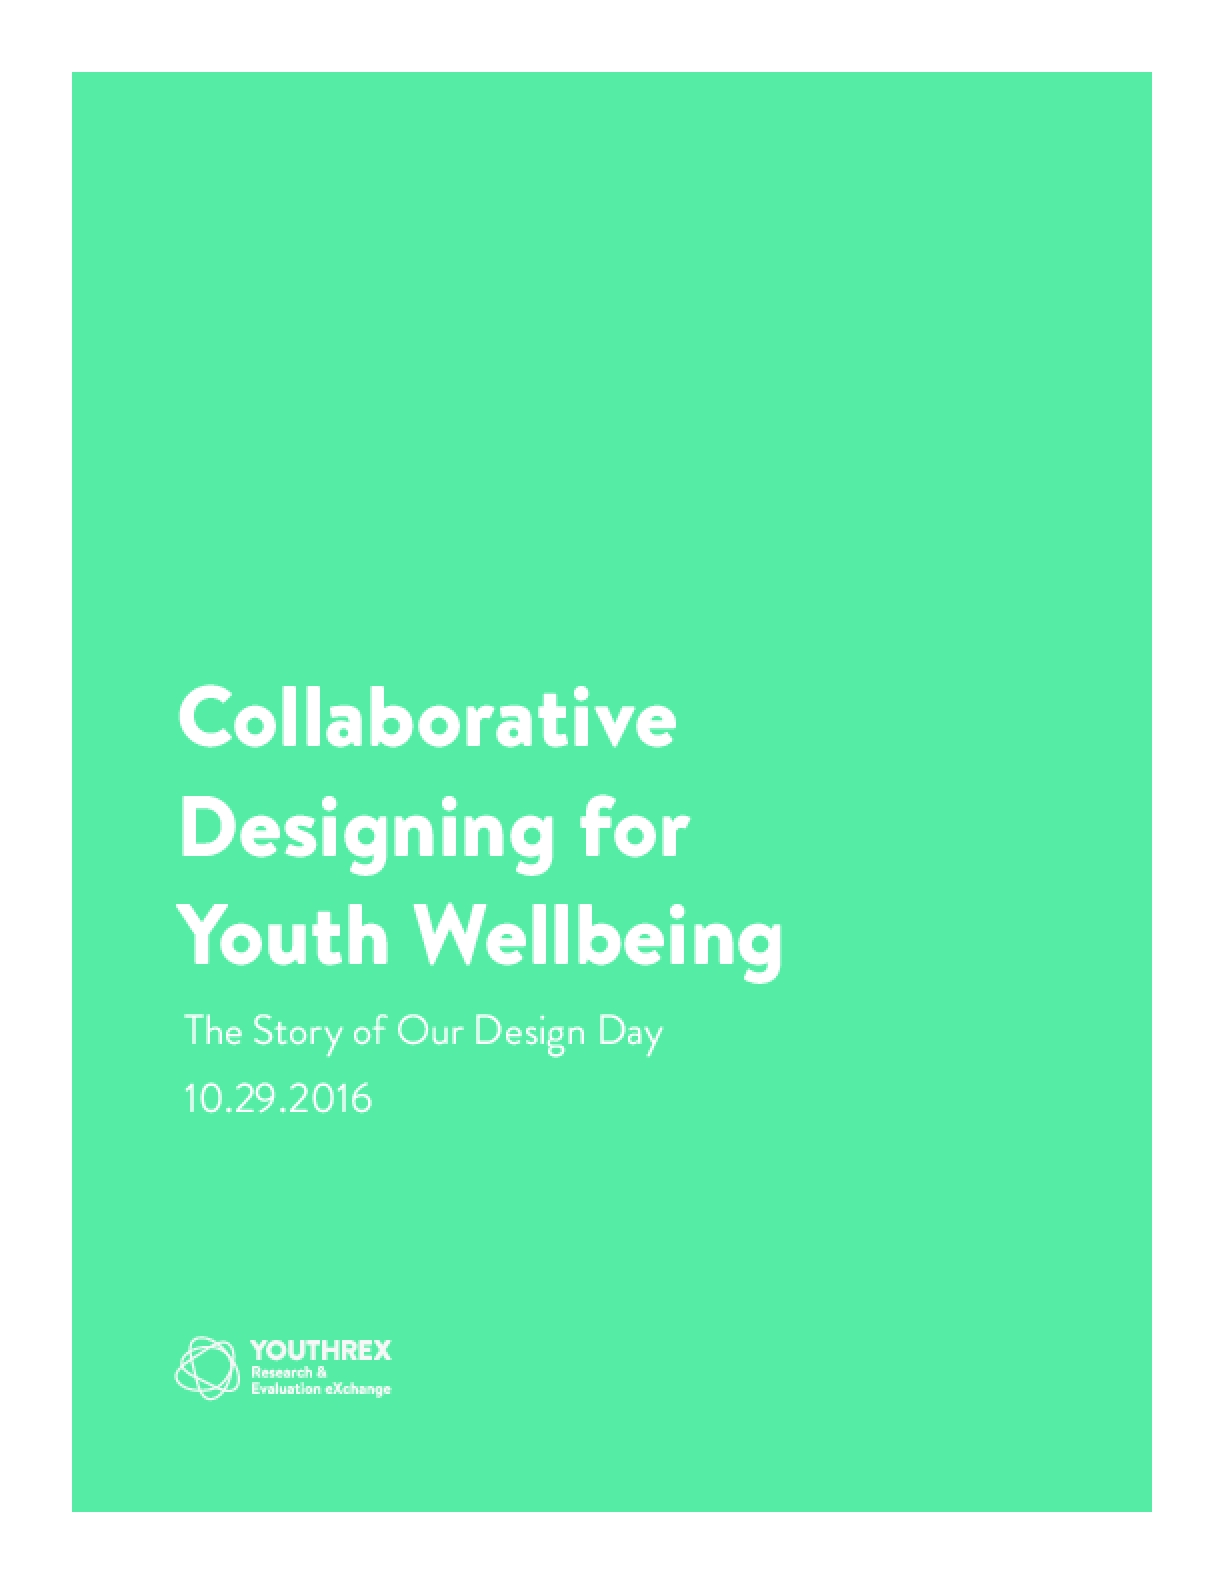 Collaborative Designing for Youth Wellbeing: The Story of Our Design Day